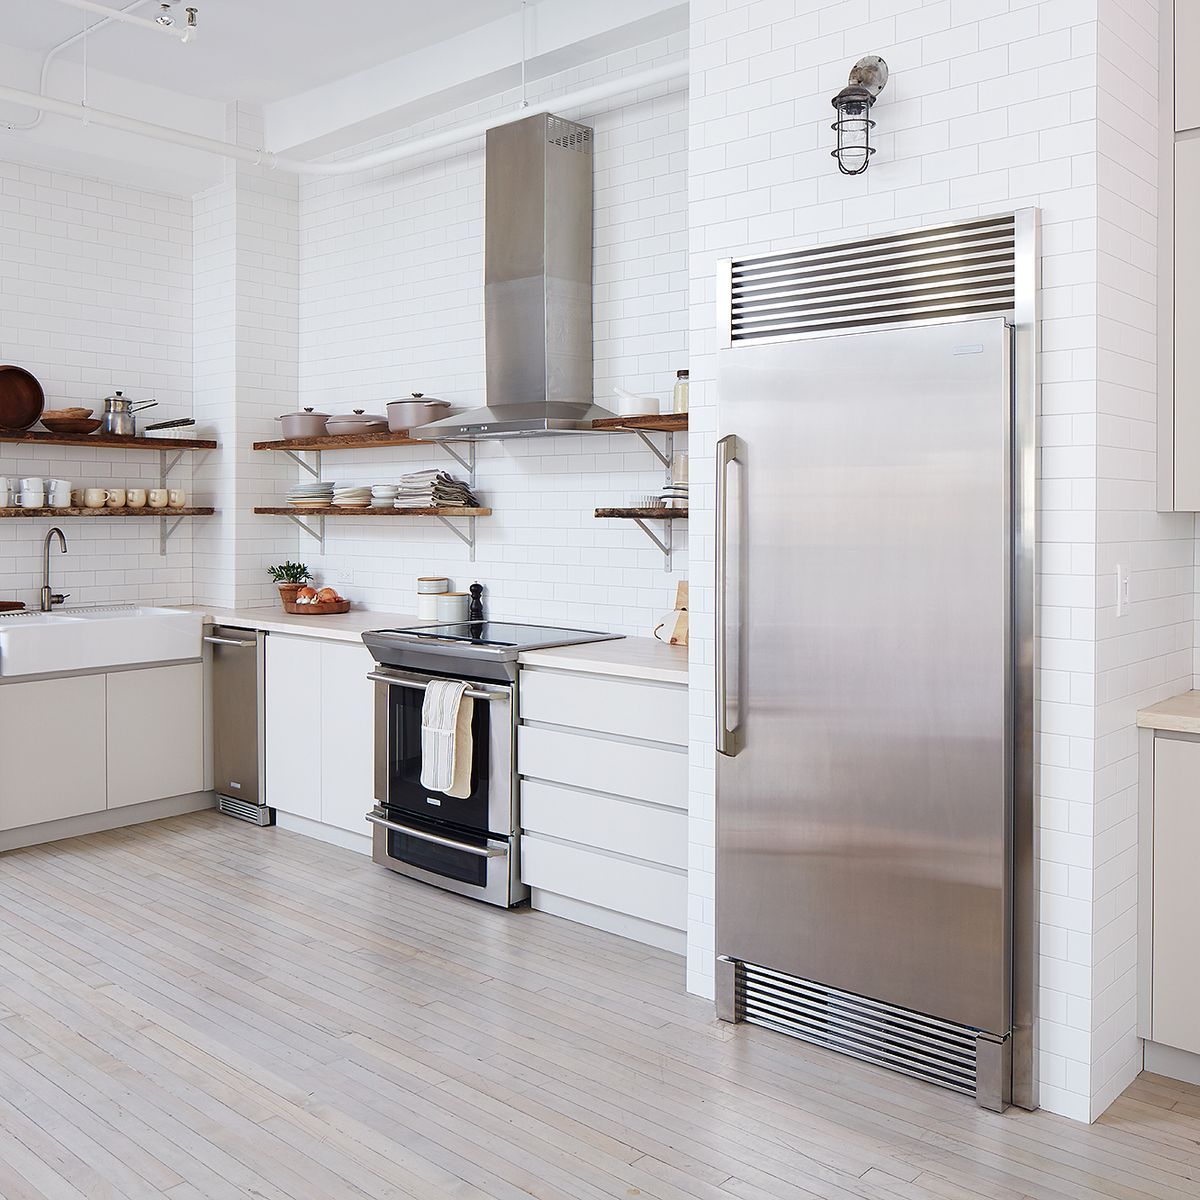 The 13 Best Kitchen Cleaning Tips We Learned in 2016